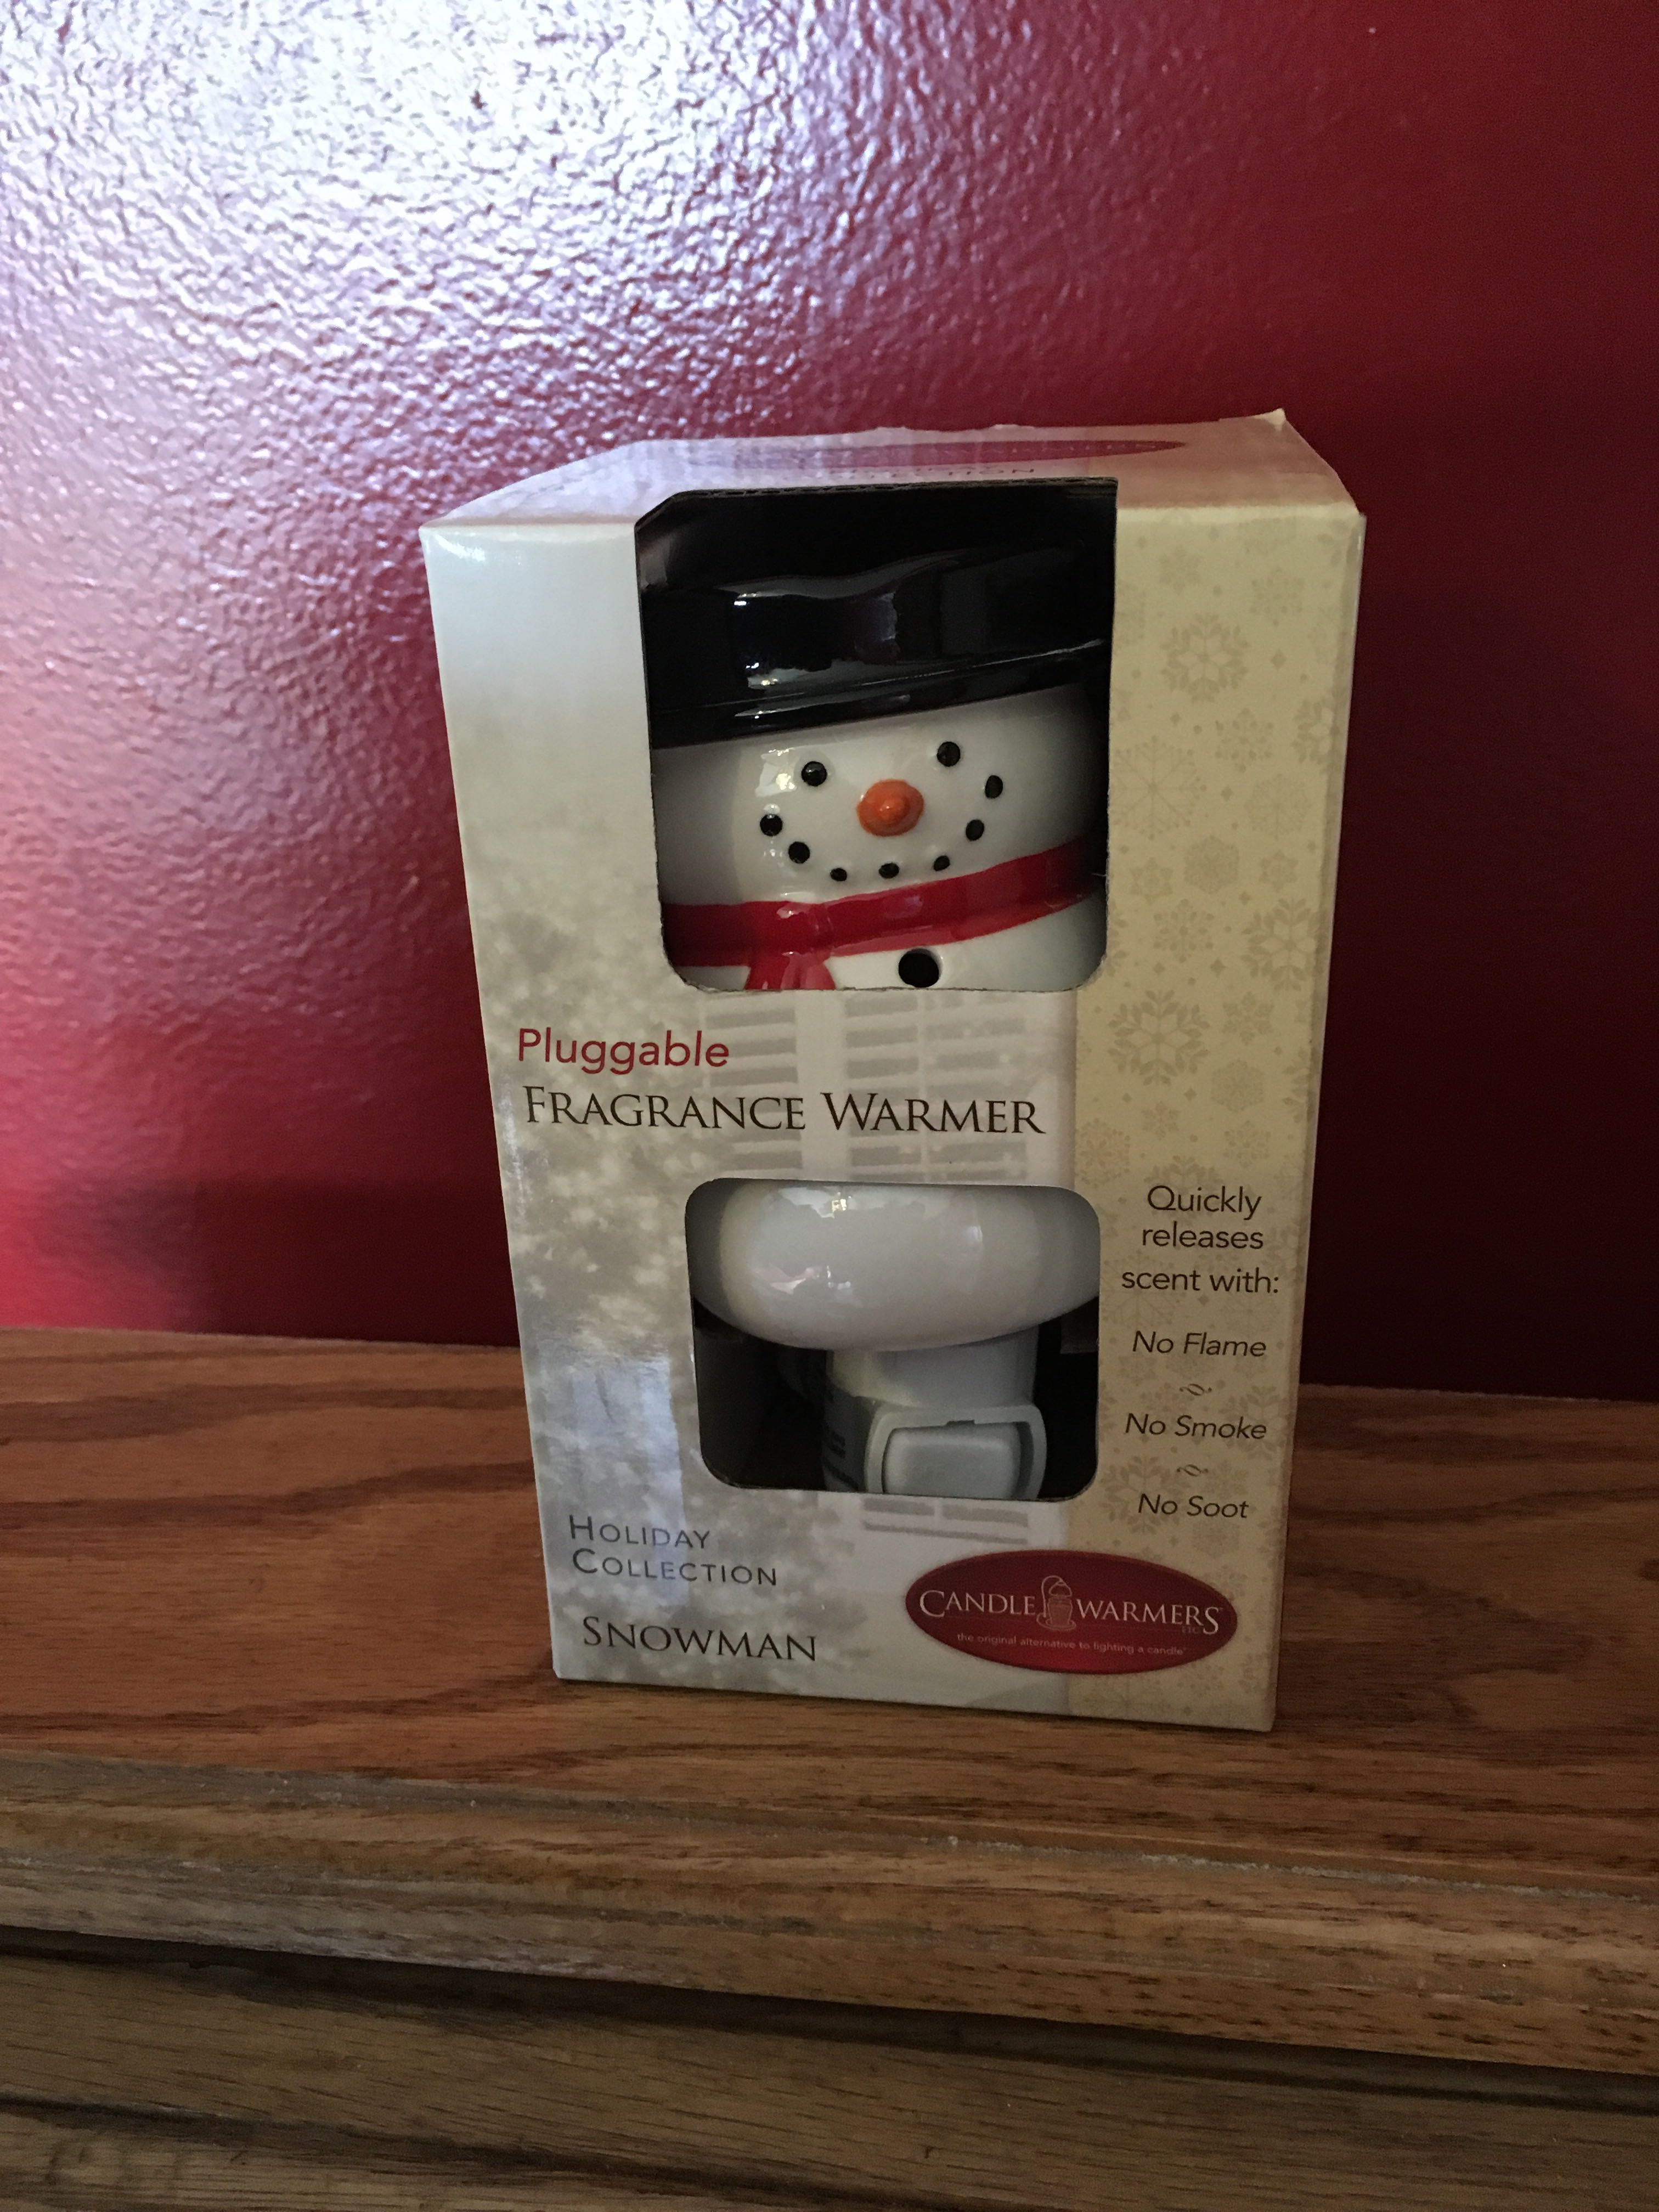 New Snowman Outlet Wax Warmer - with free wax melts!